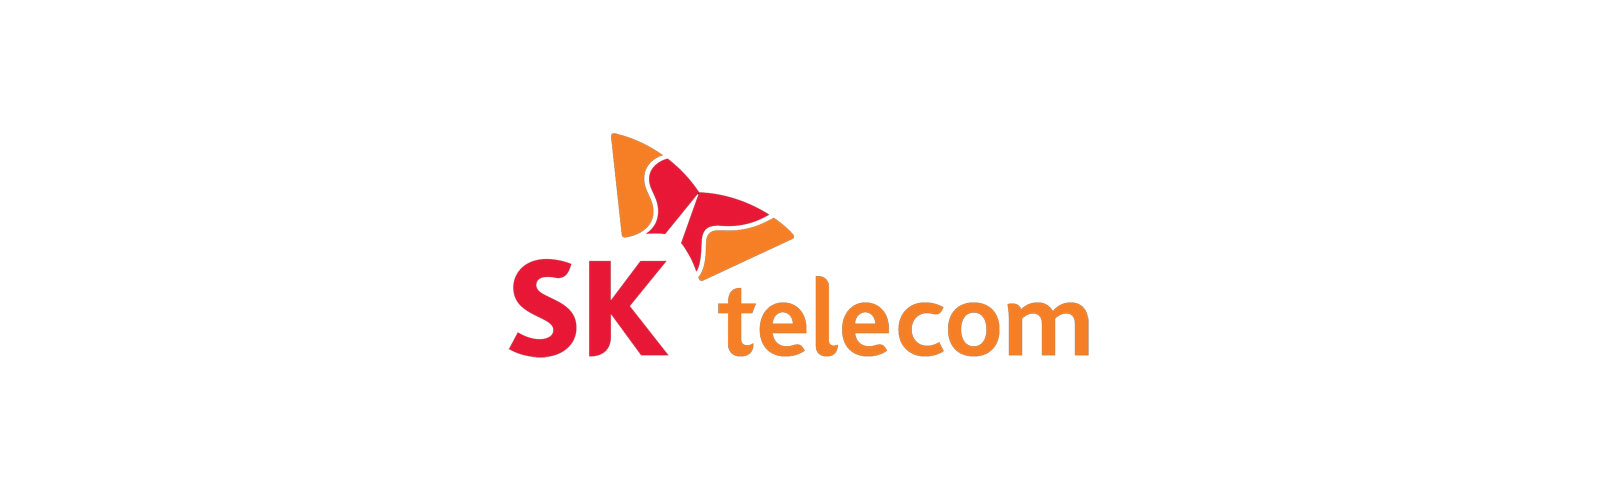 SK Telecom rolls out its 5G roaming service in Switzerland partnering with Swisscom